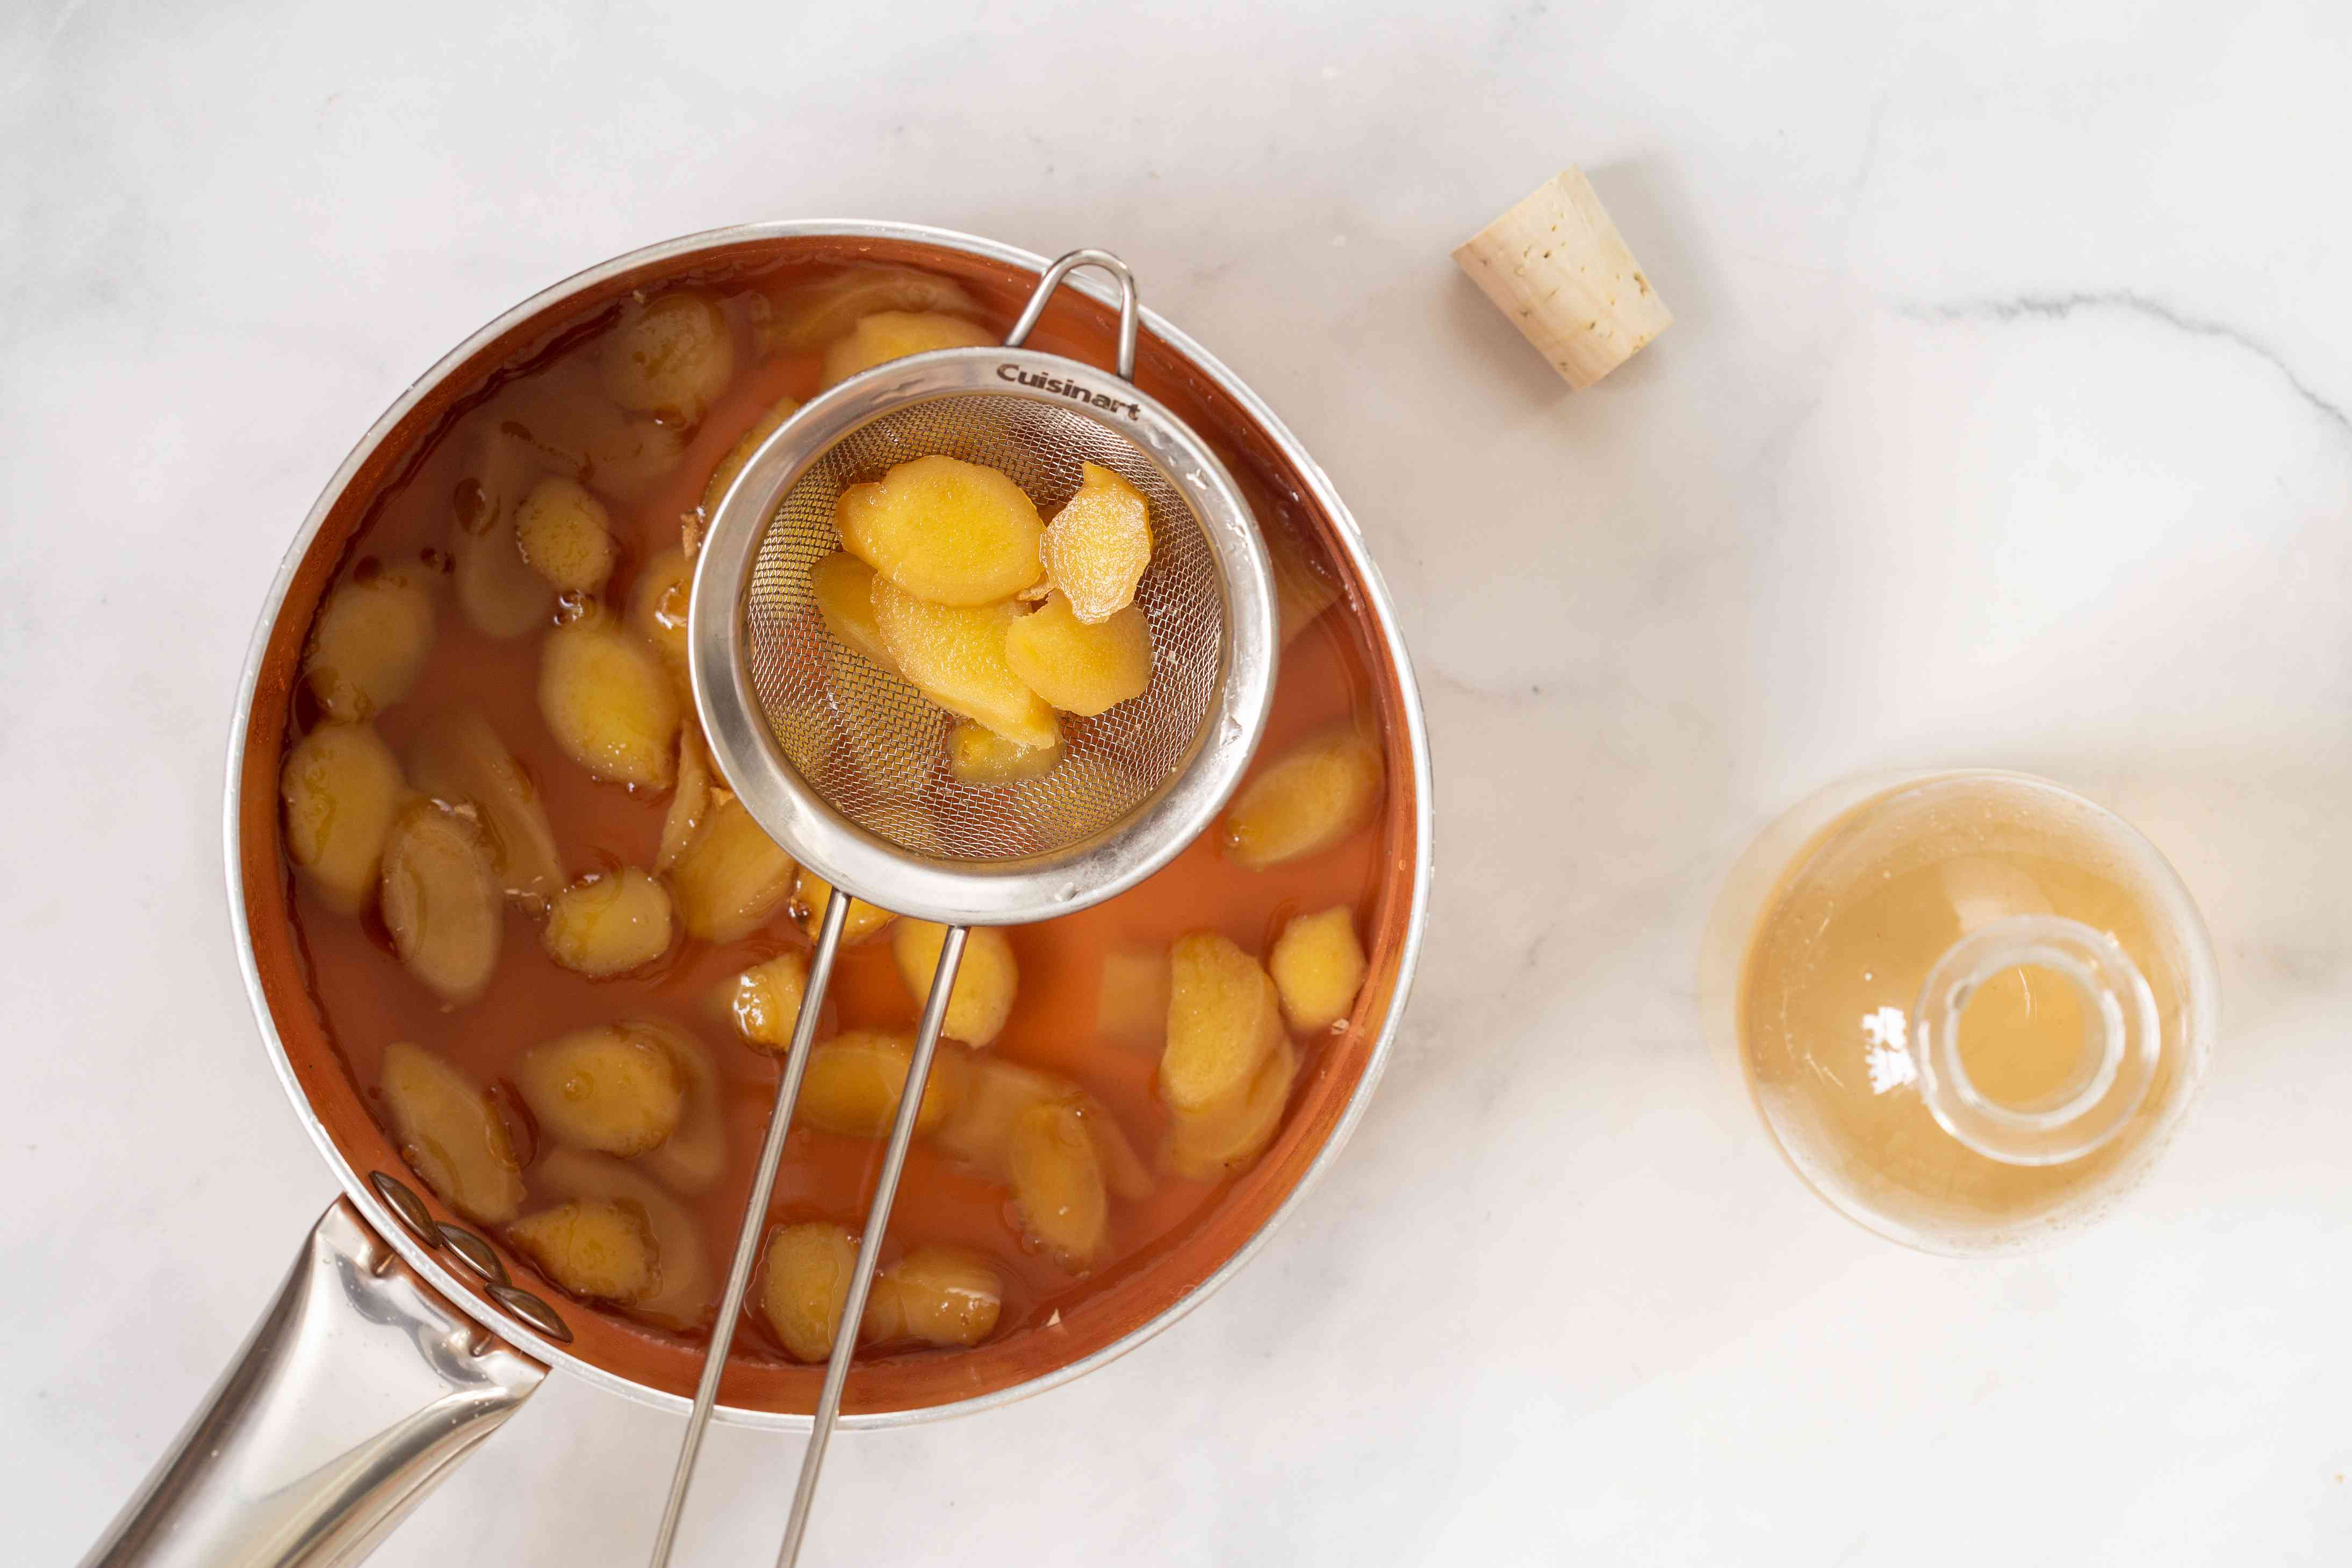 Straining out ginger from the simple syrup in a pot